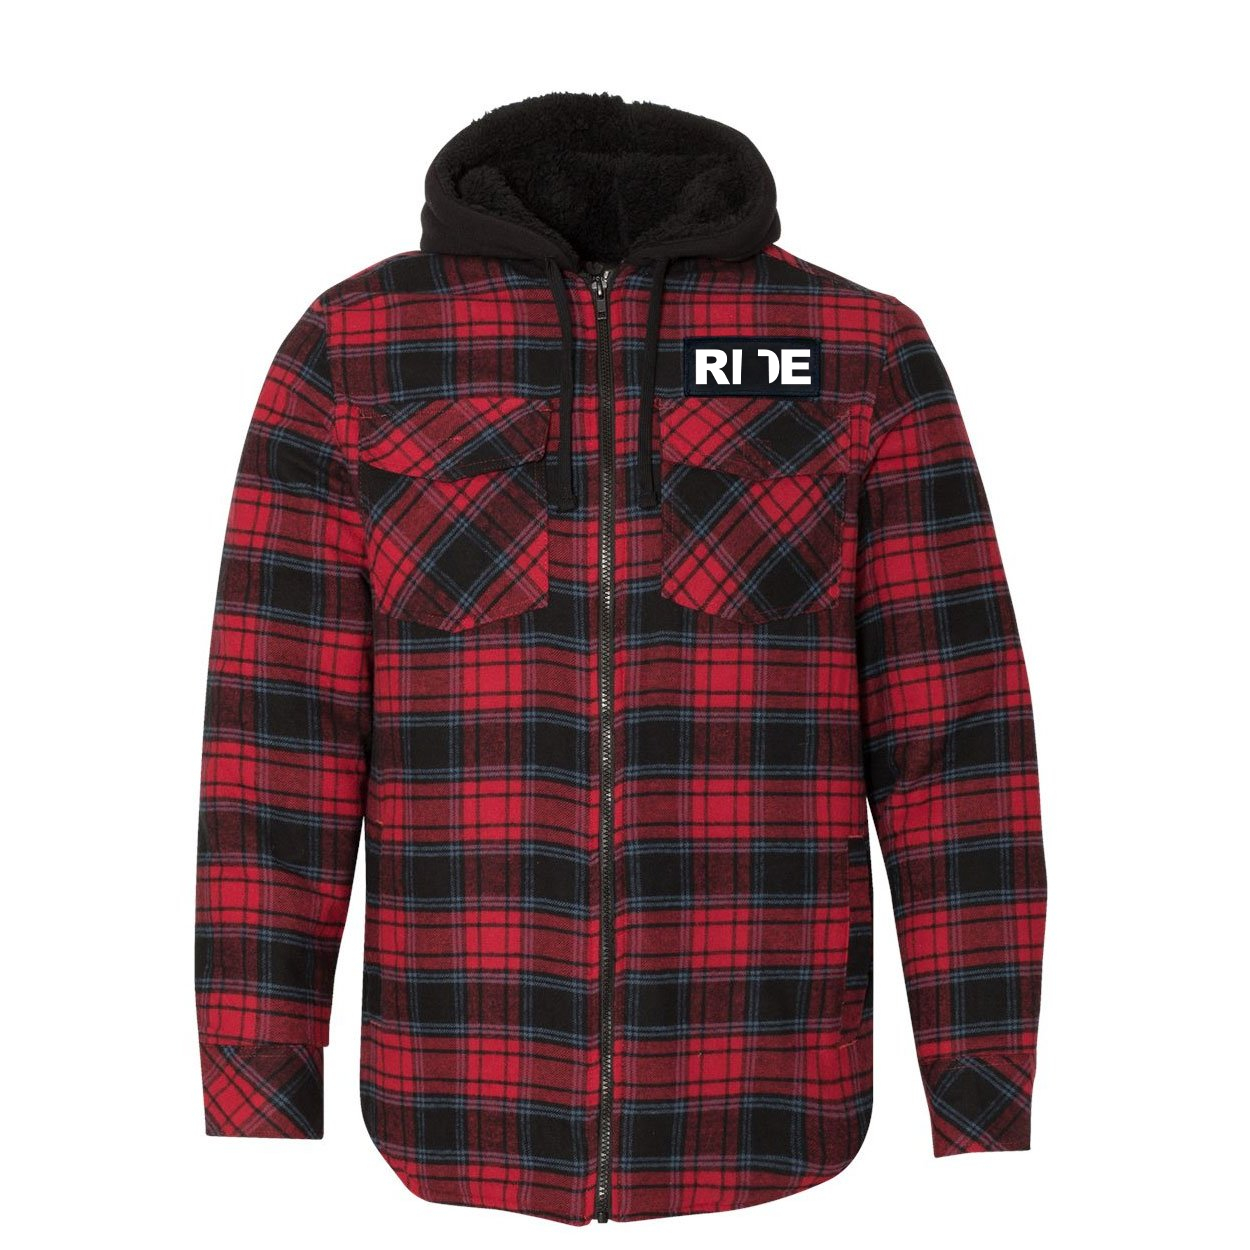 Ride Utah Classic Unisex Full Zip Woven Patch Hooded Flannel Jacket Red/Black Buffalo (White Logo)